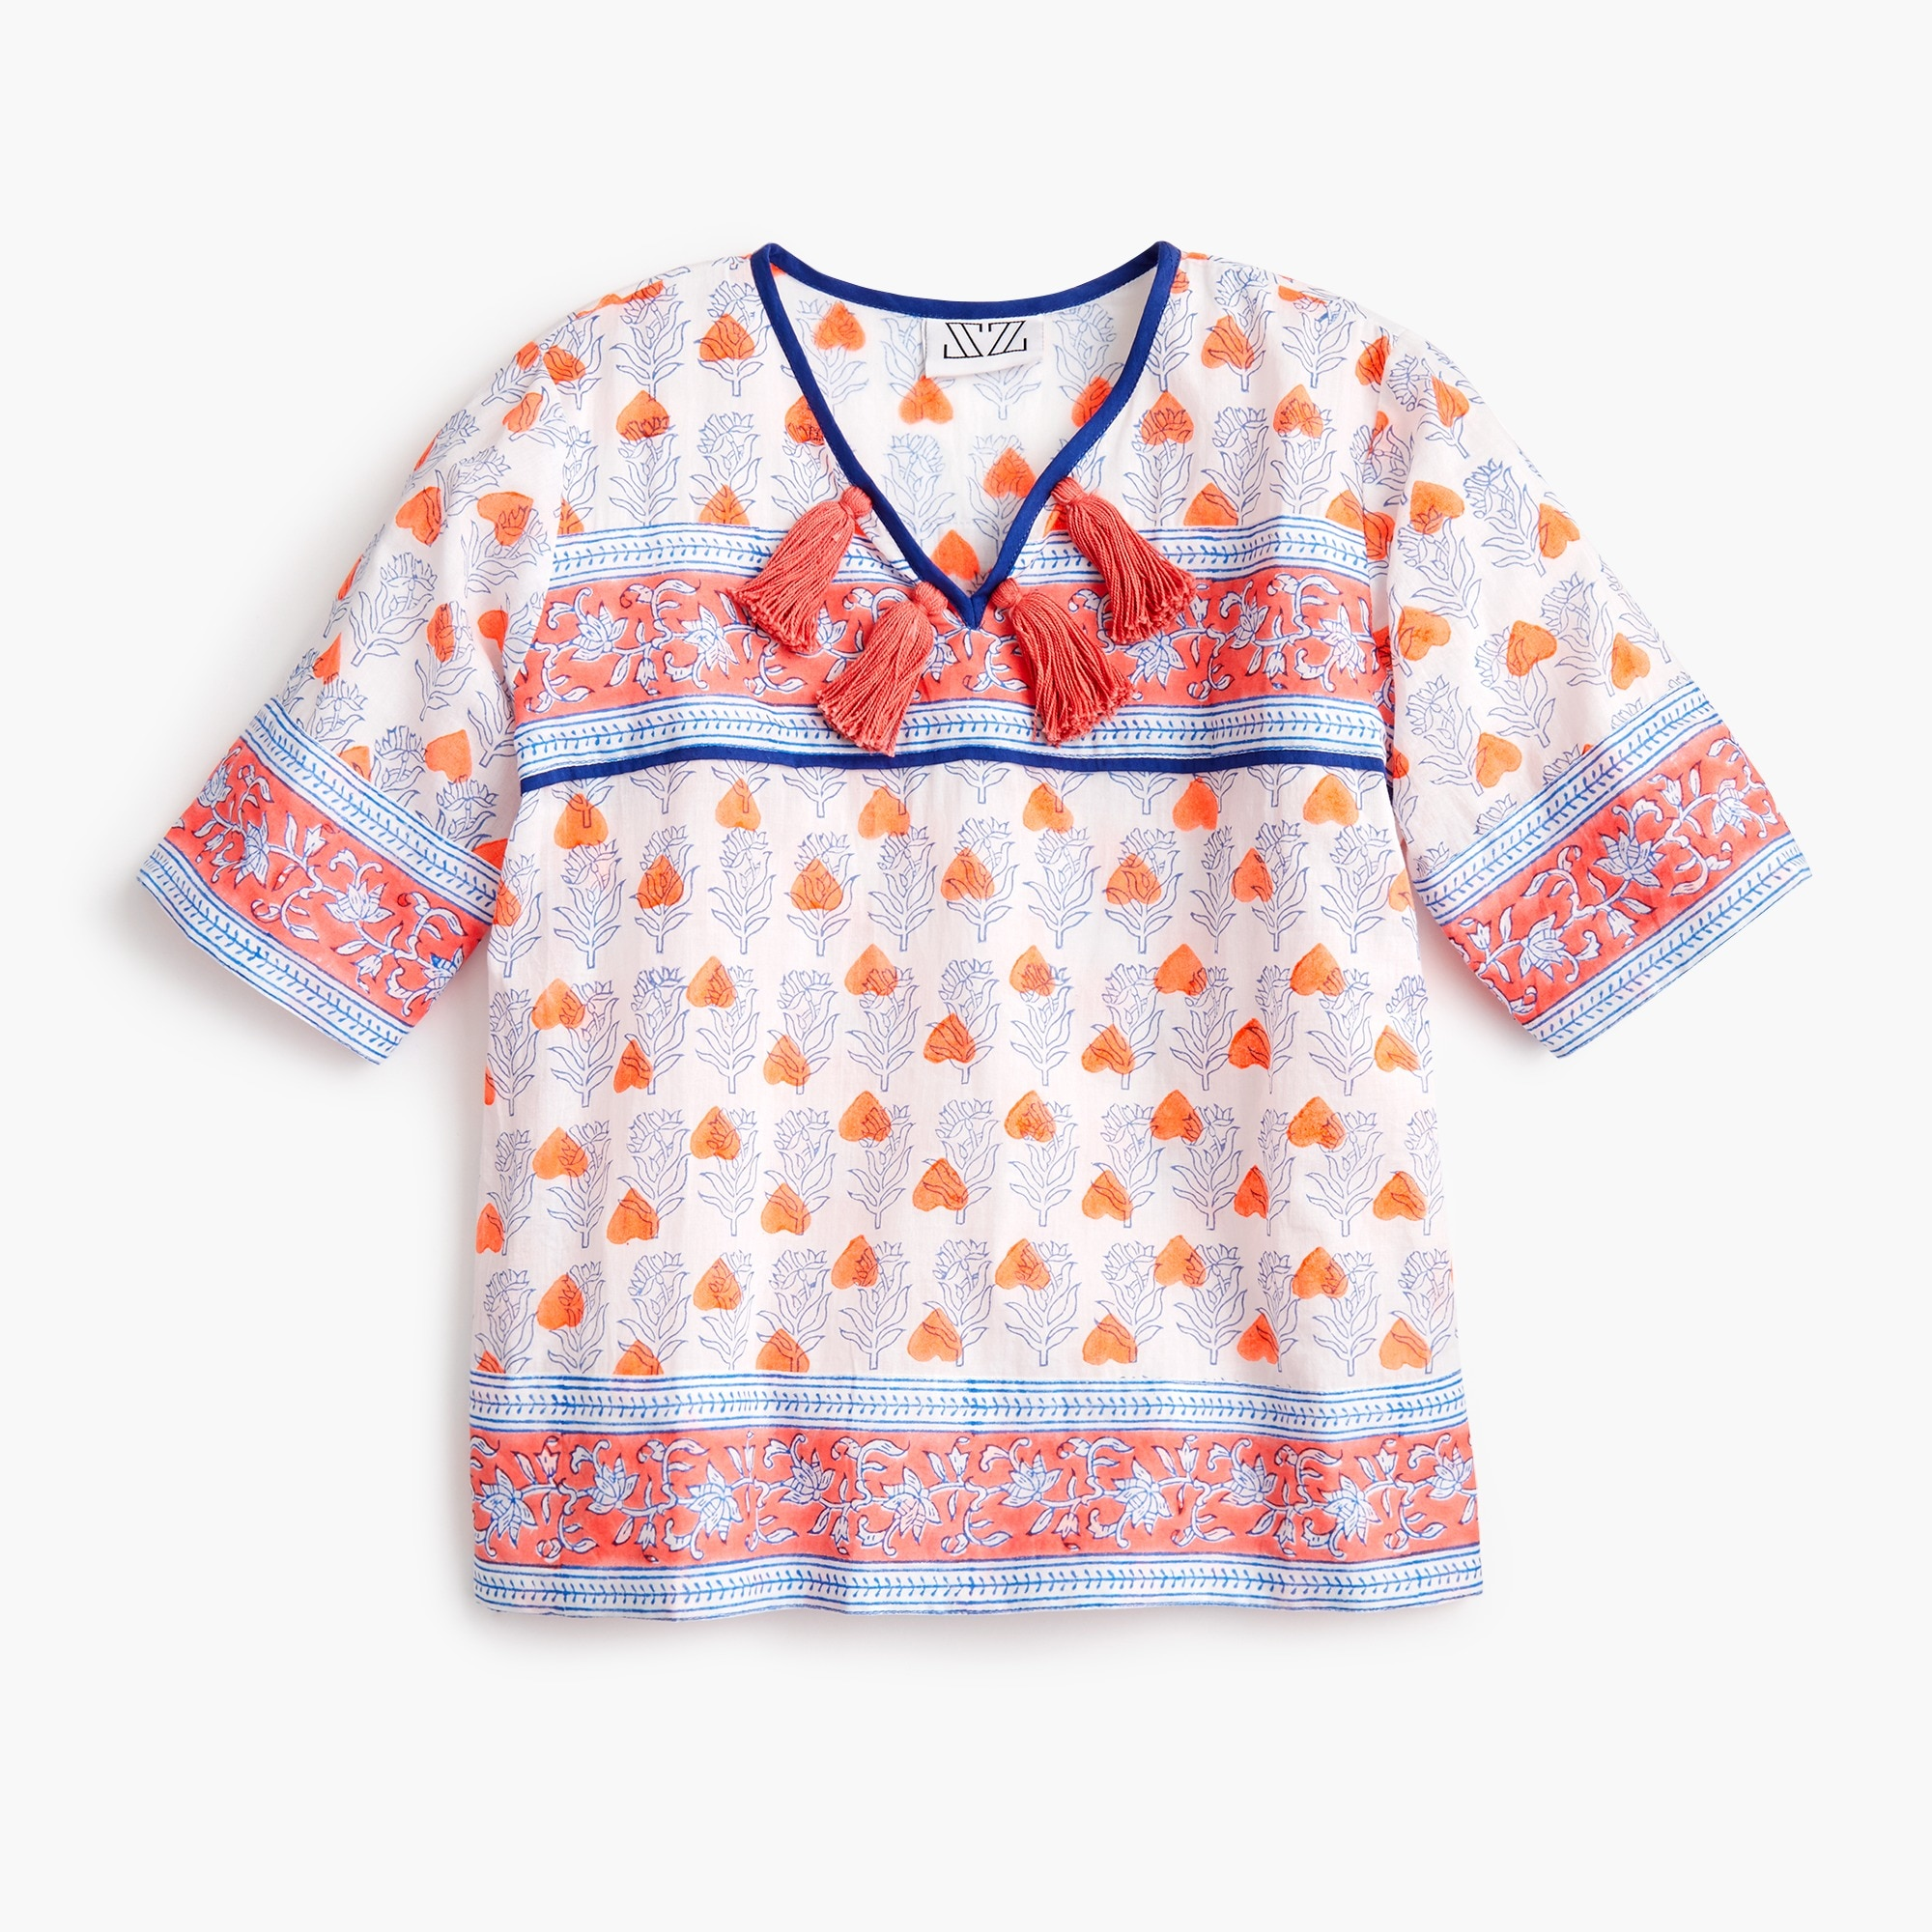 girls Girls' SZ Blockprints™ for crewcuts tassel-trimmed top in orange hearts